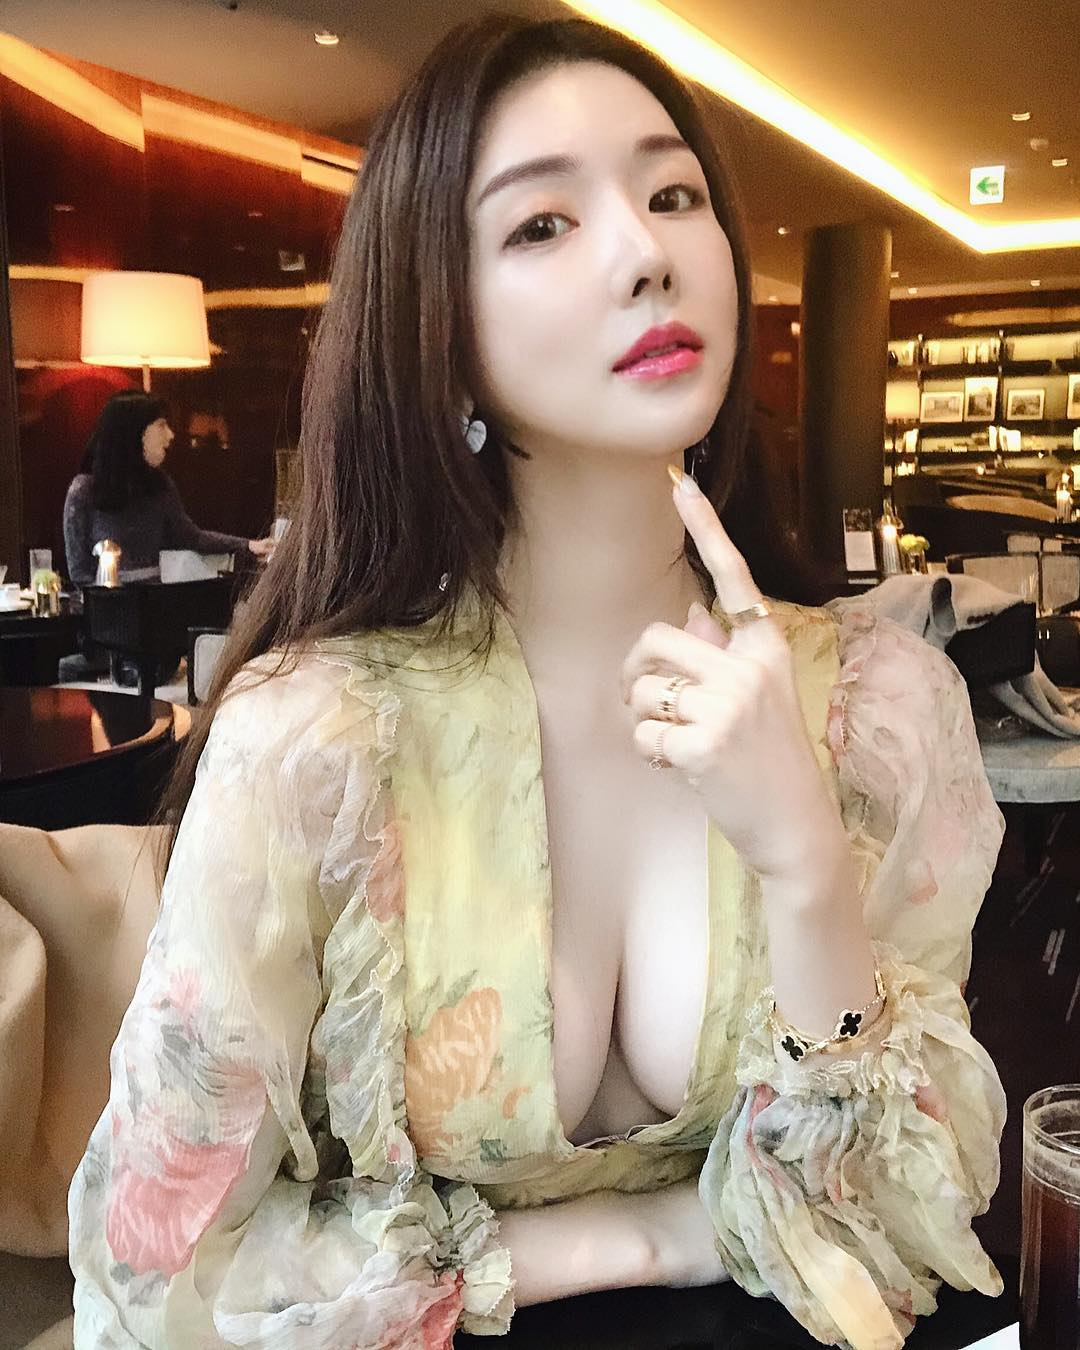 Korean Chaozheng blogger, with hot and sexy figure 380